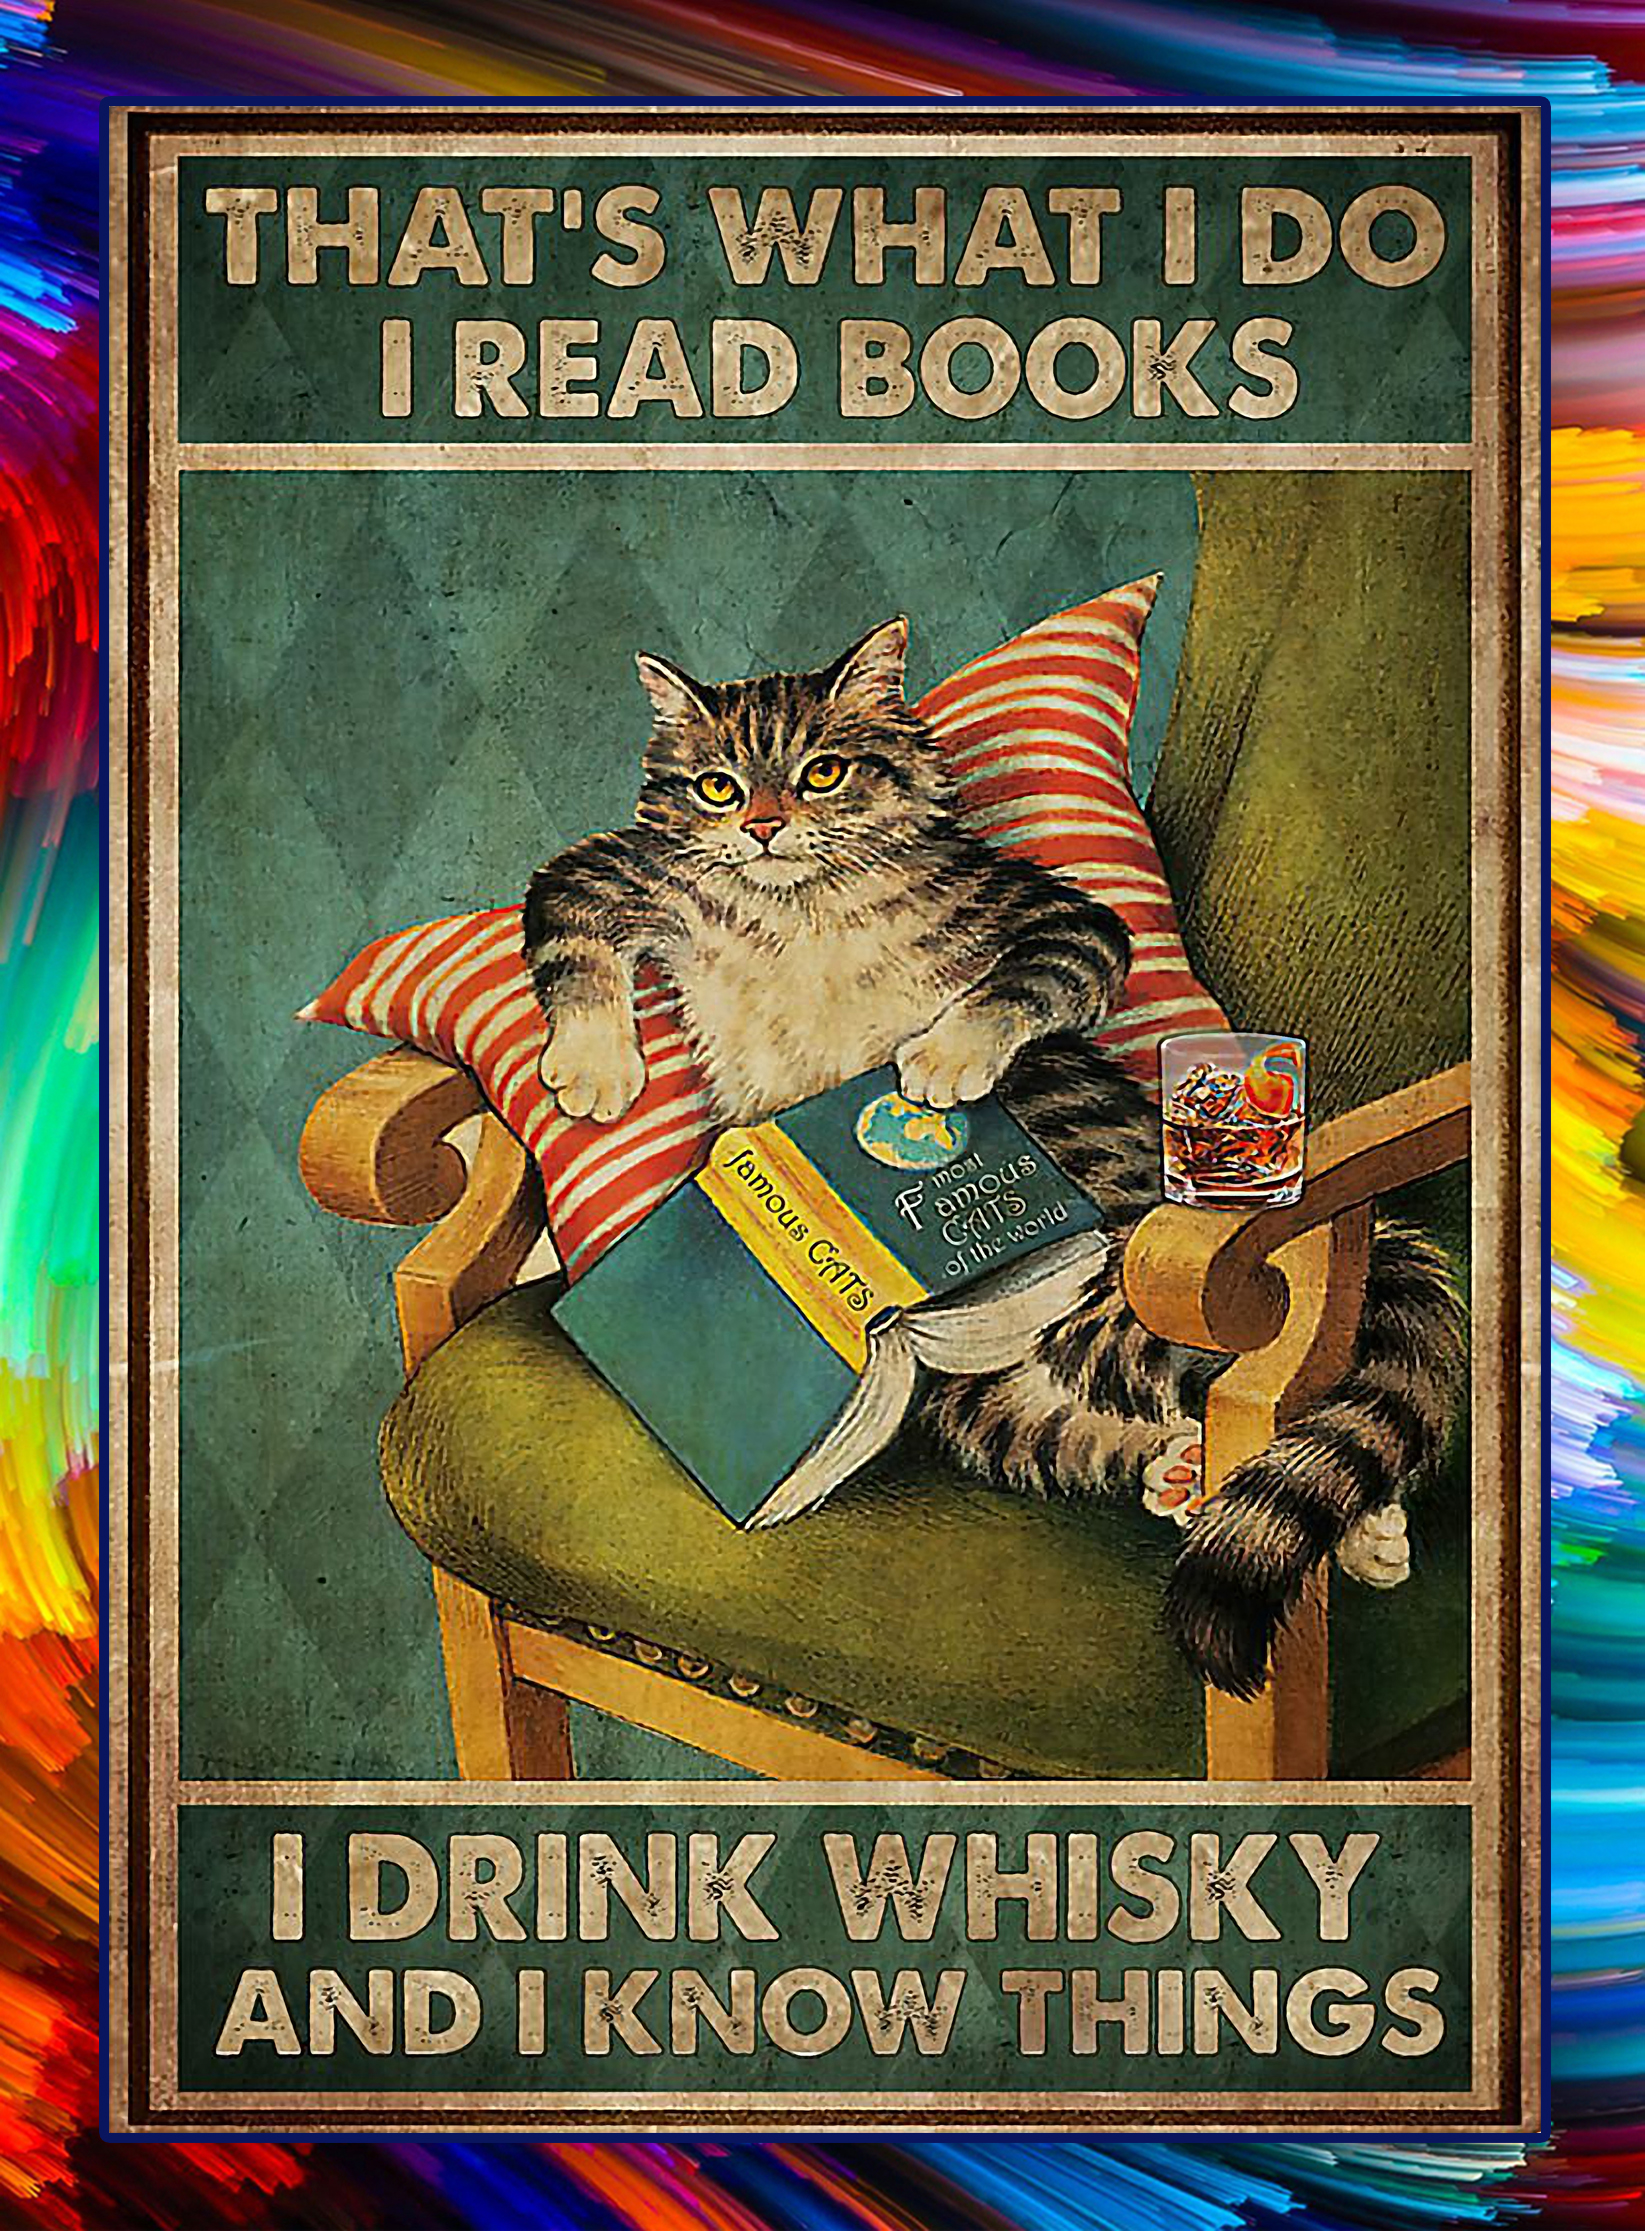 Keep The Change You Filthy Animal longsleeve teeCat that's what I do I read books I drink whisky and I know things poster